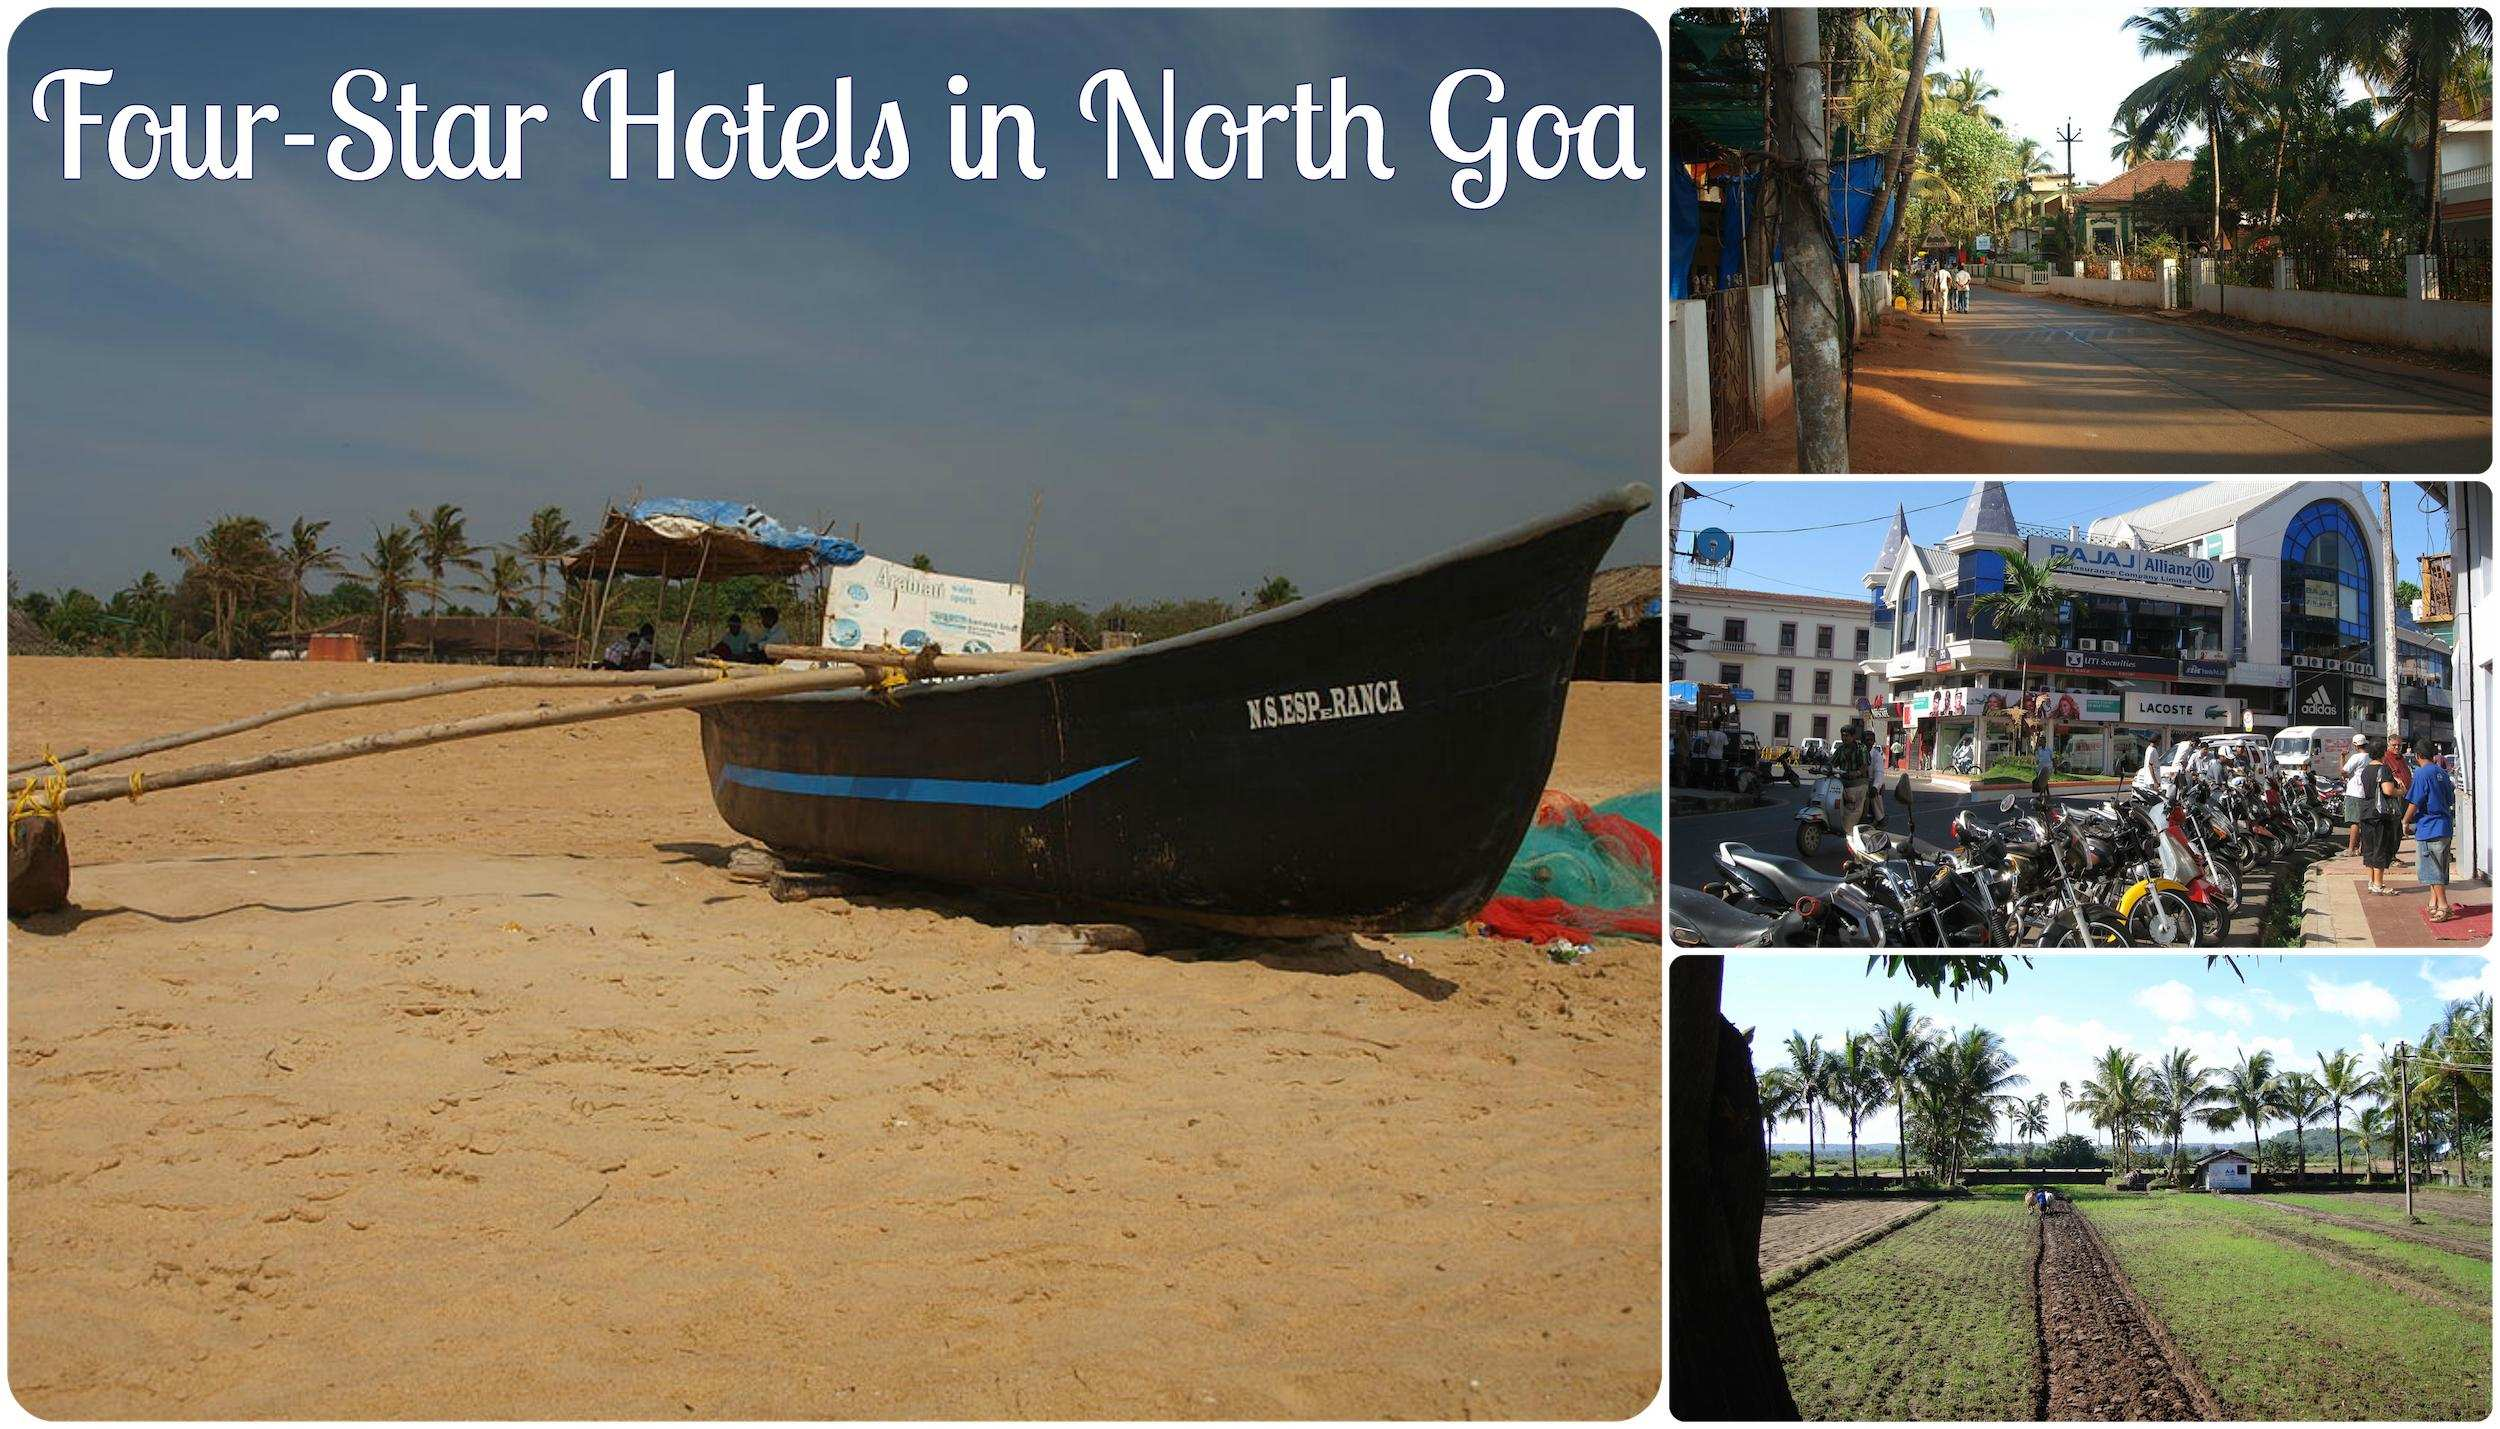 4star-hotels-north-goa.jpg